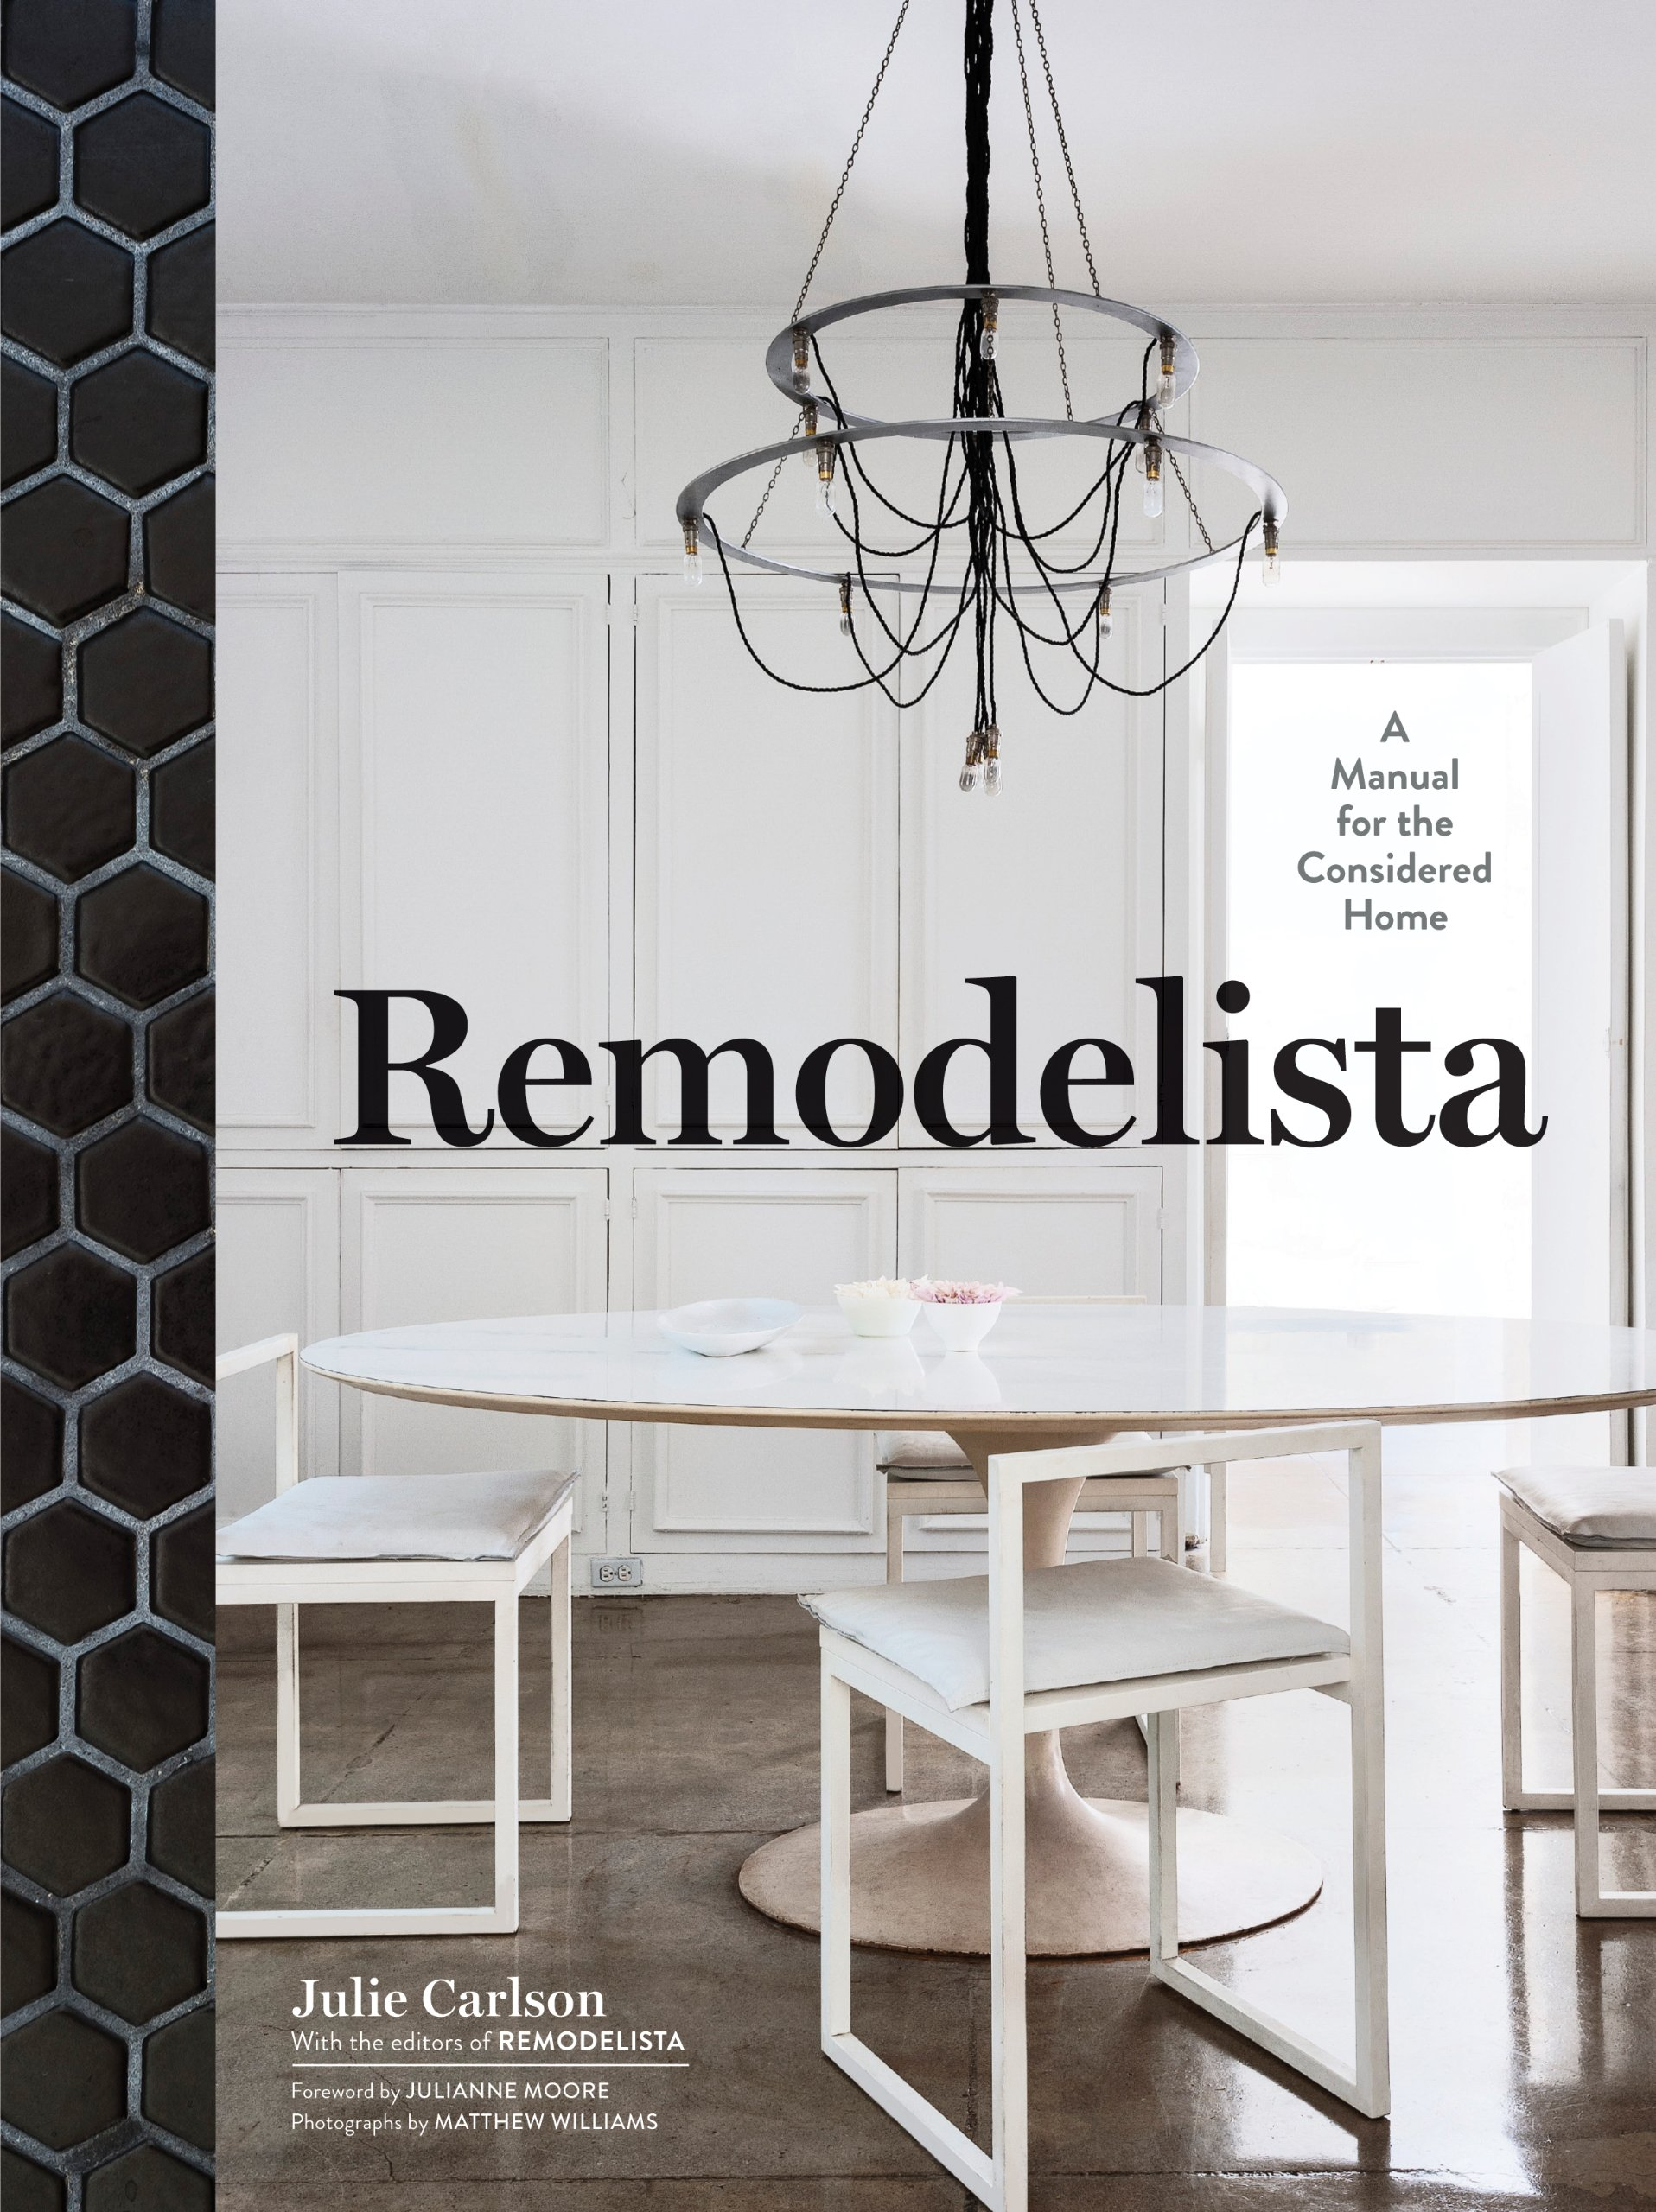 Remodelista by Julie Carlson coffee table book ideas